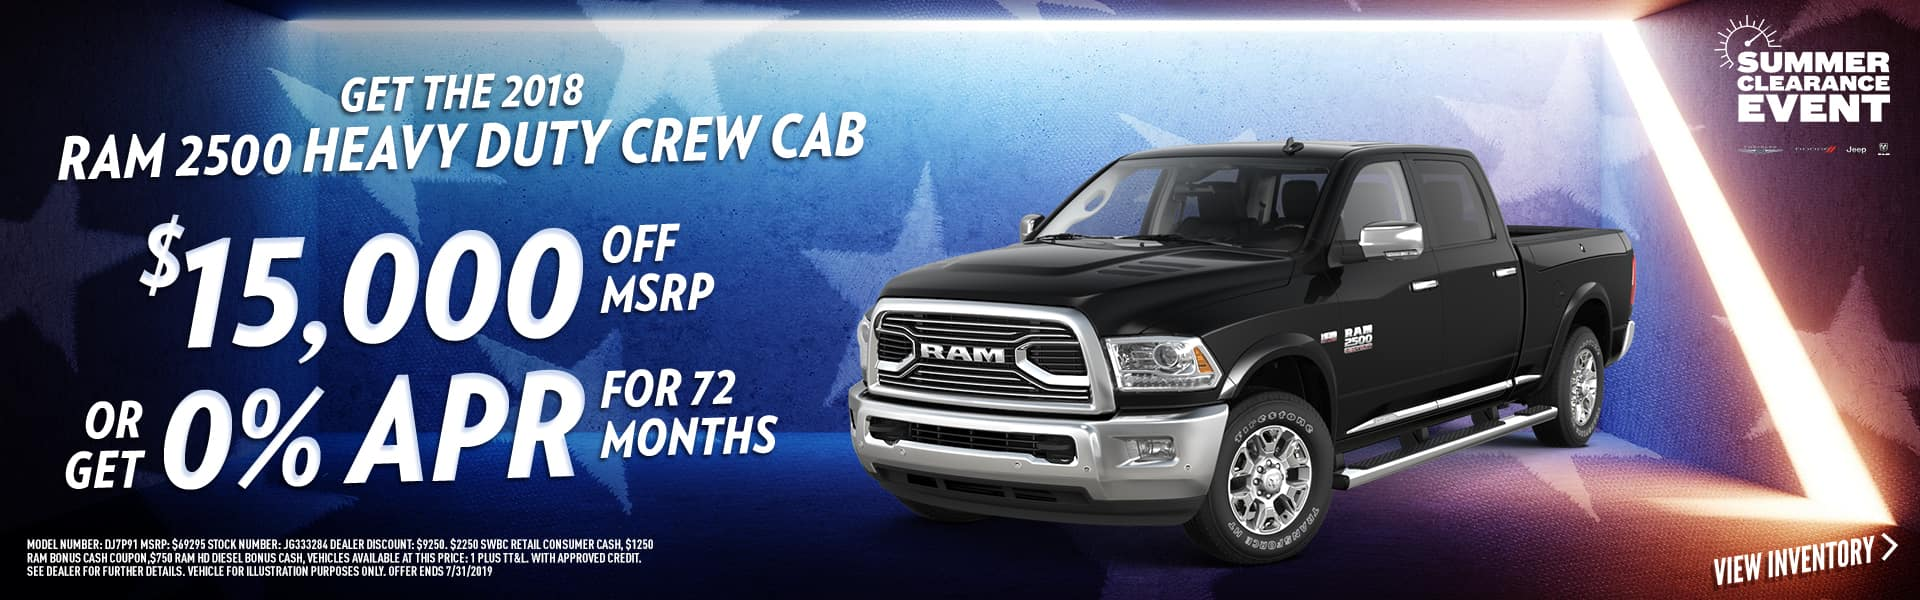 get-2018-ram-2500-heavy-duty-crew-cab-15000-off-msrp-or-zero-percent-apr-mike-smith